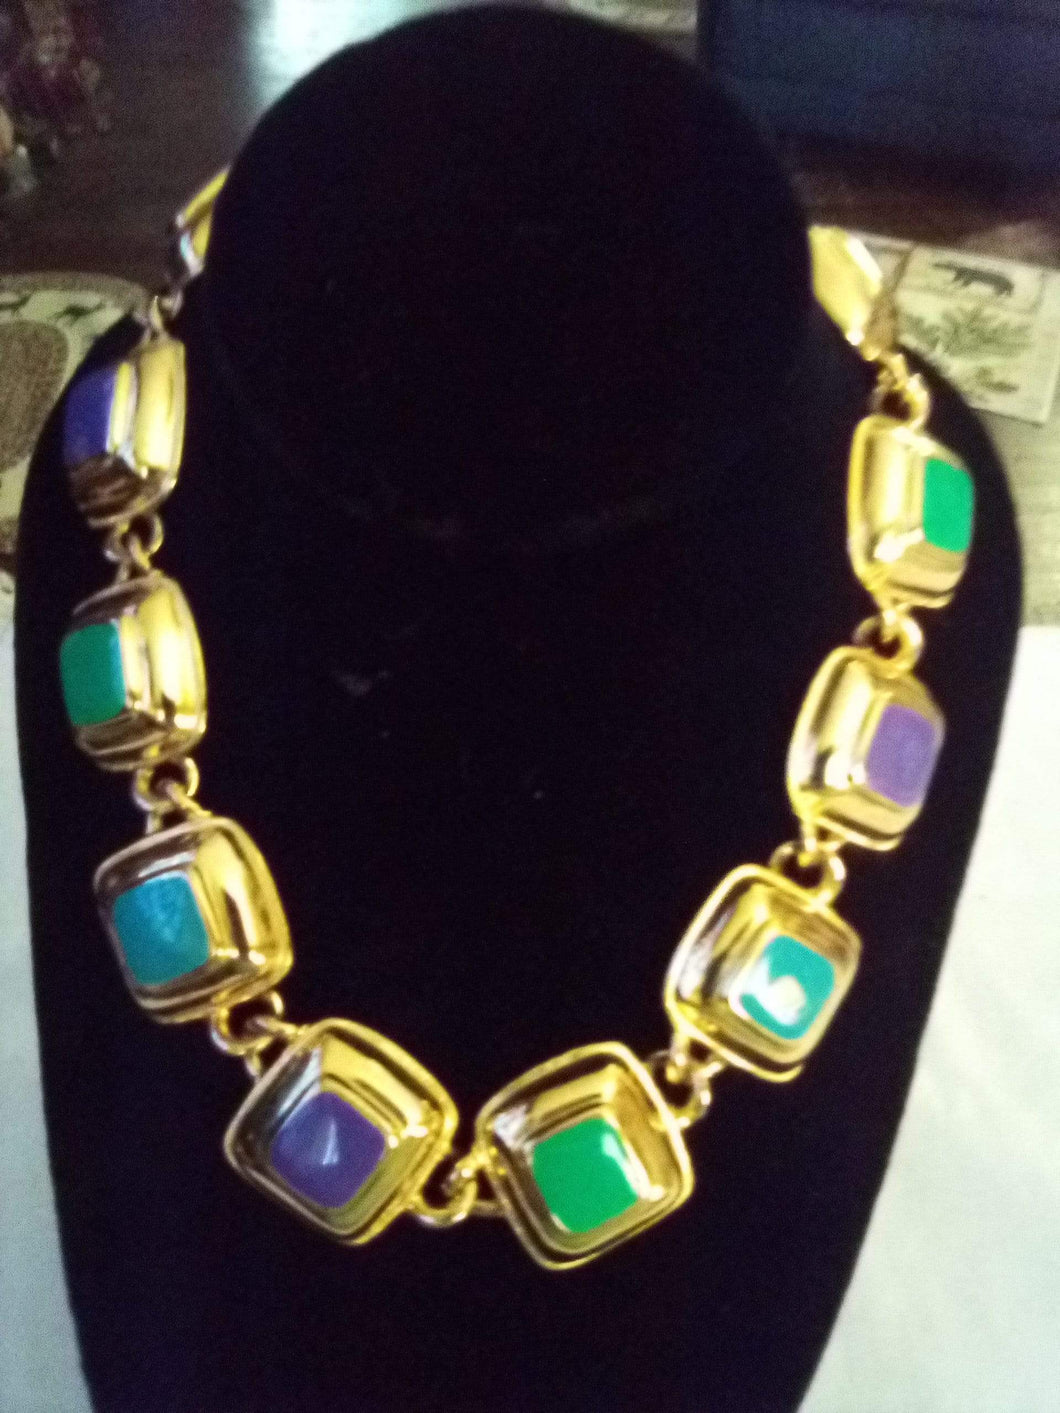 Unusual gold tone pretty necklace - B&P'sringsnthings